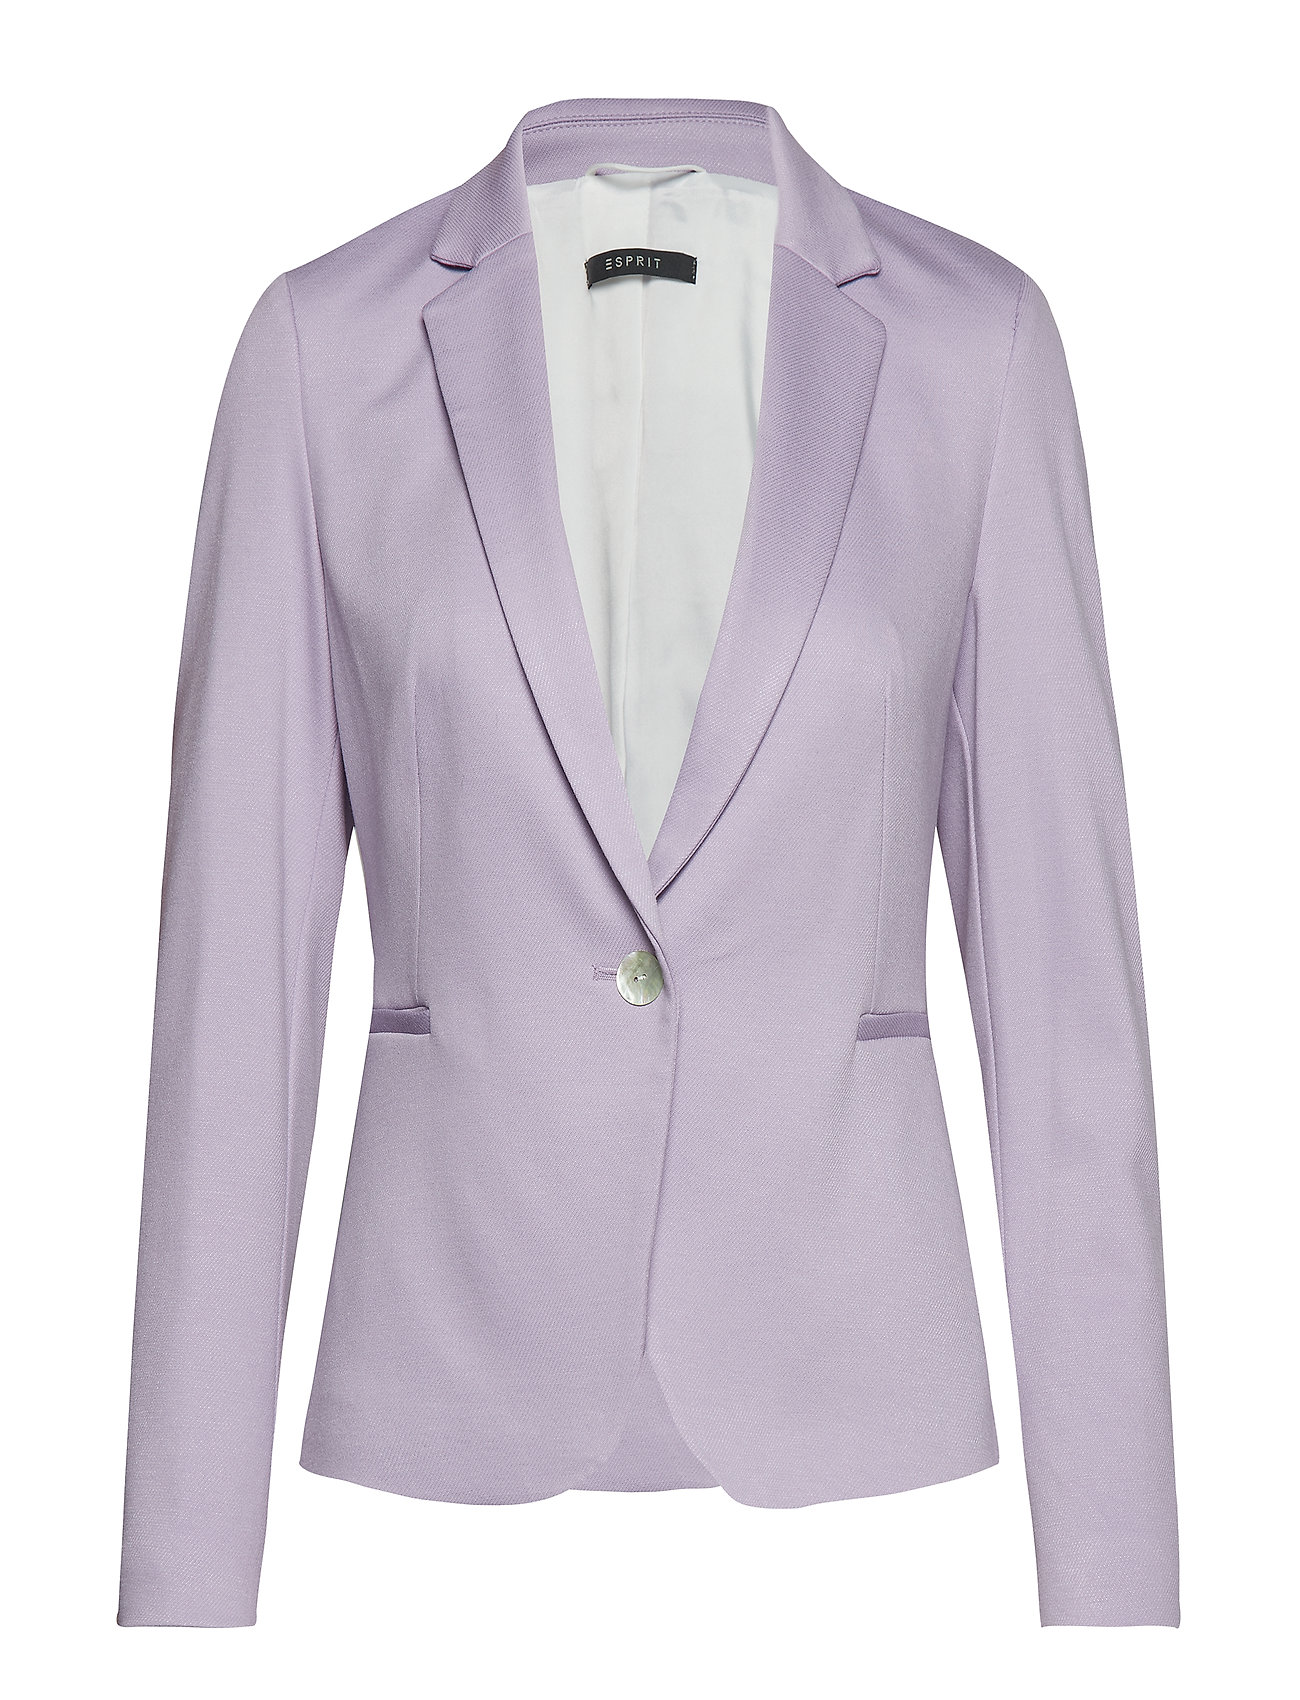 77ac7d5f12bad Blazers Woven (Lilac) (£48.75) - Esprit Collection -   Boozt.com